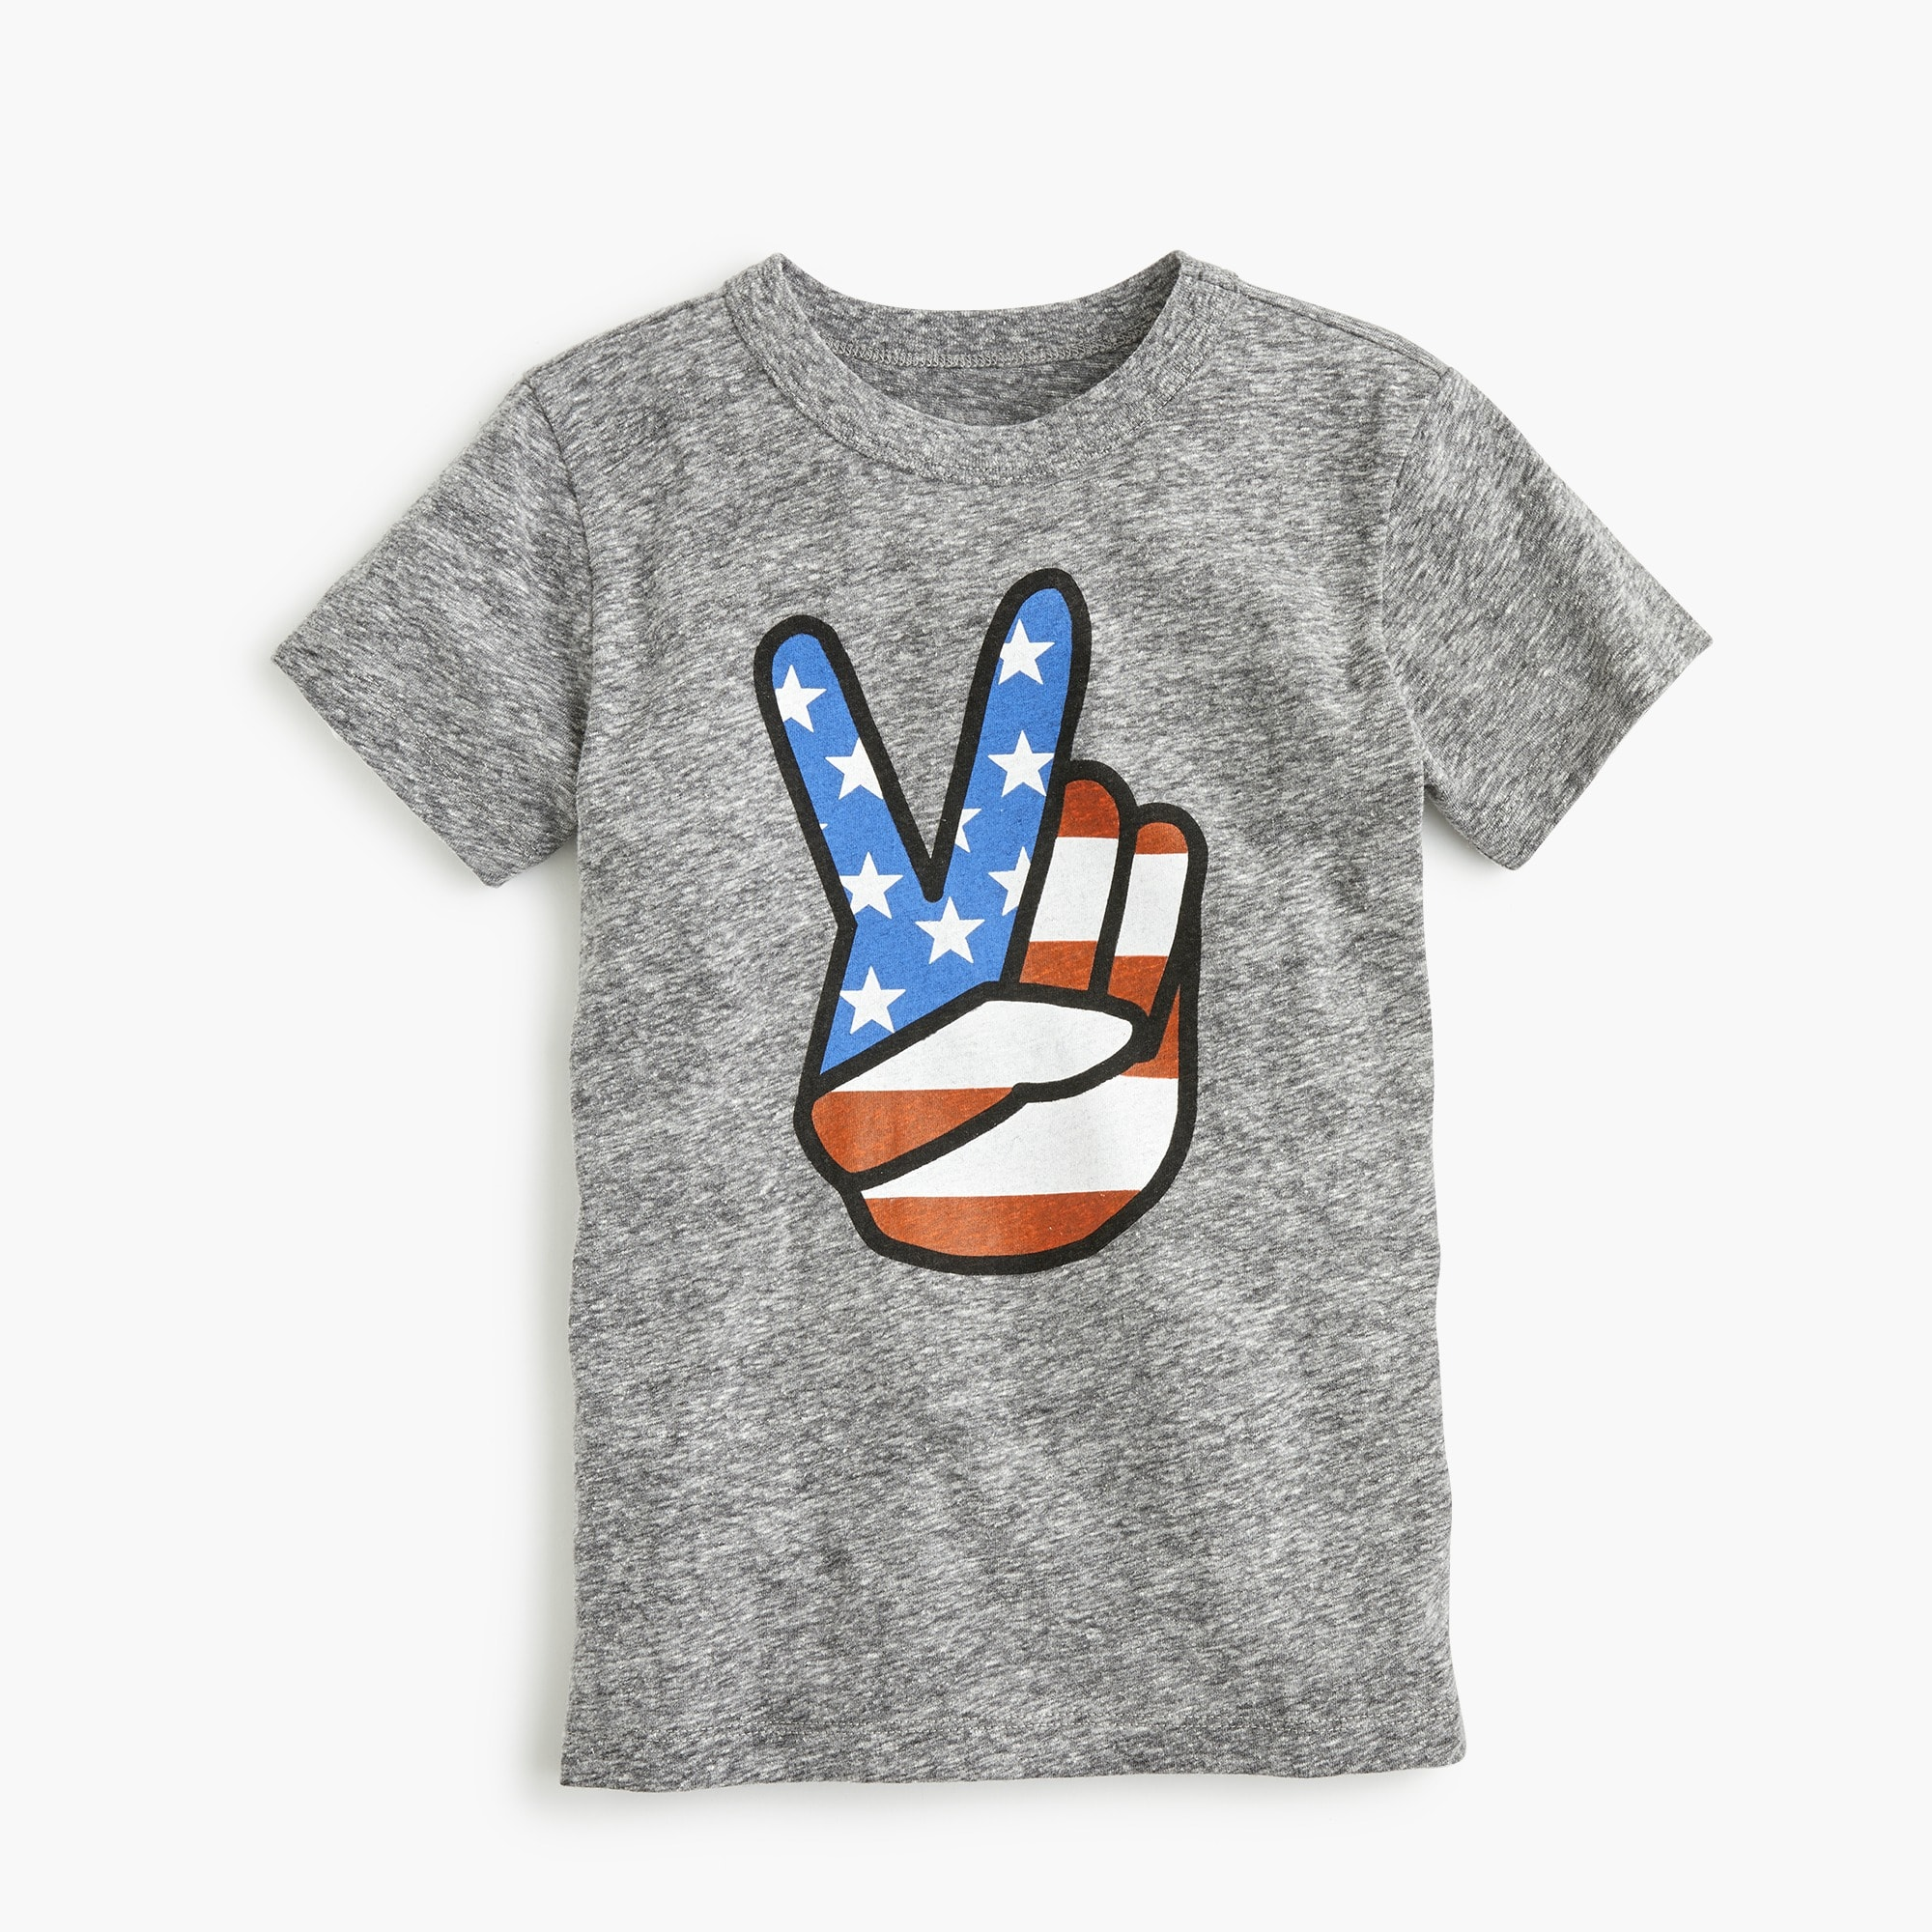 Boys' peace sign T-shirt boy new arrivals c